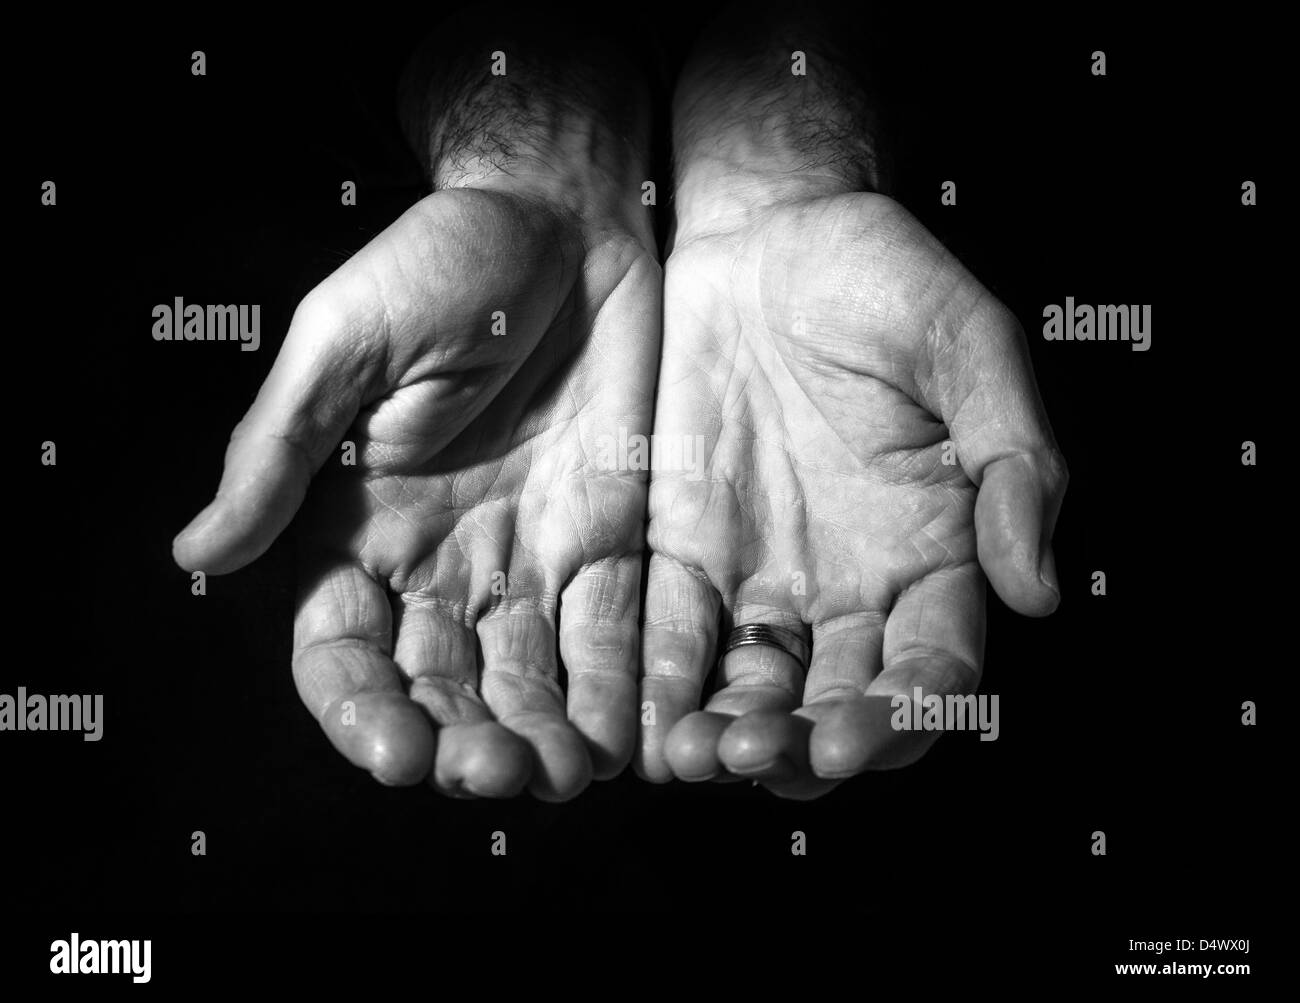 Holding out hands for help. - Stock Image